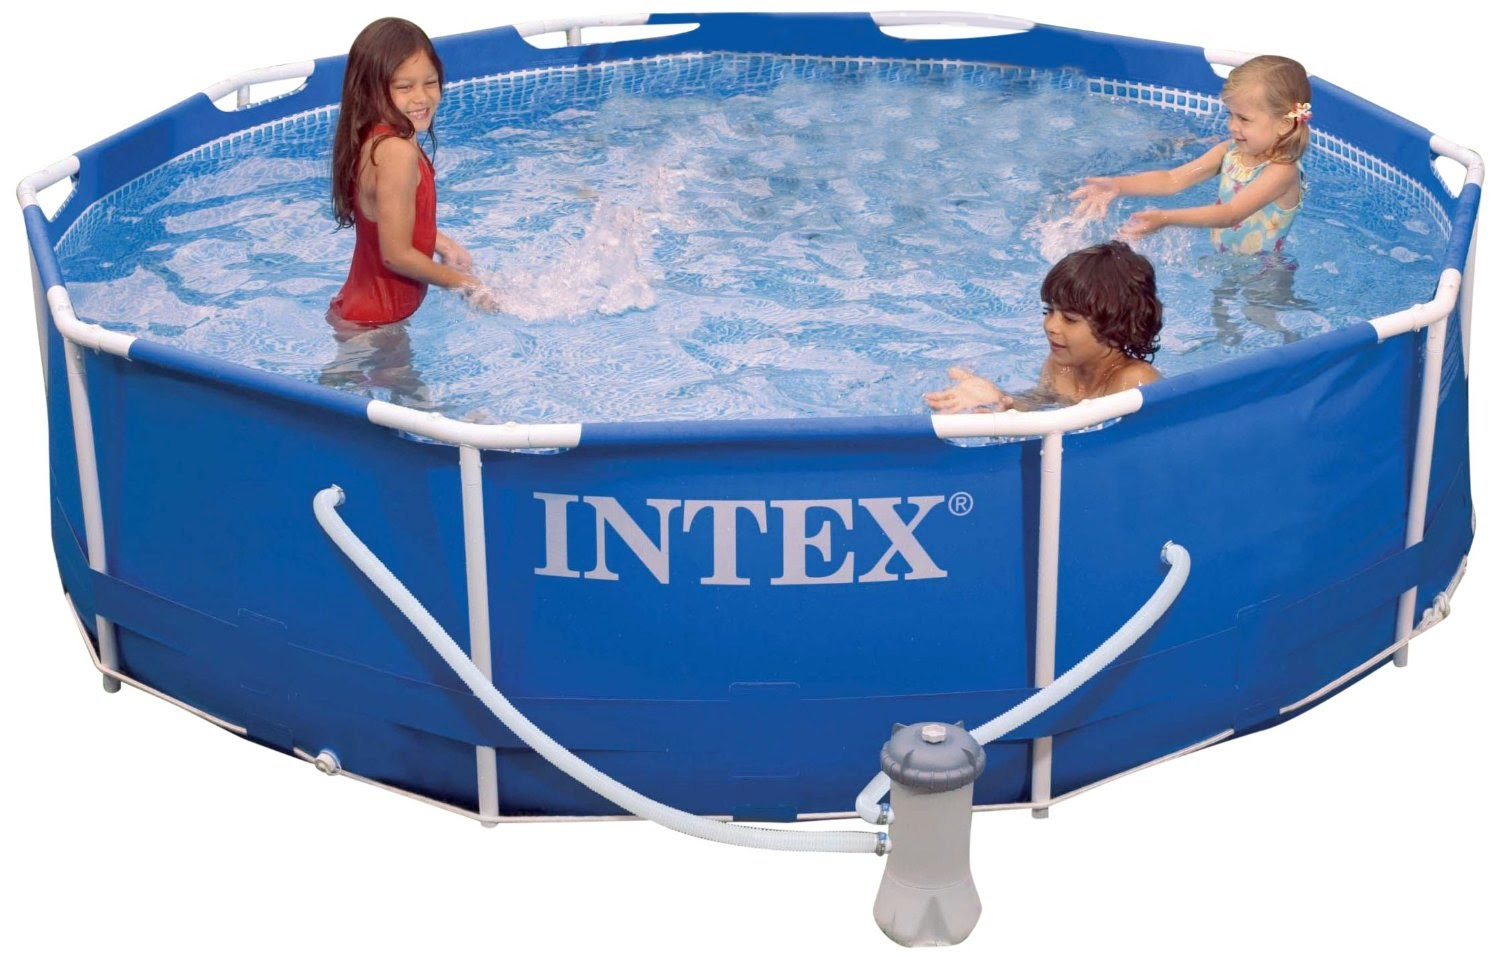 Best seller intex pools reviews intex pools walmart for Swimming pool supplies walmart